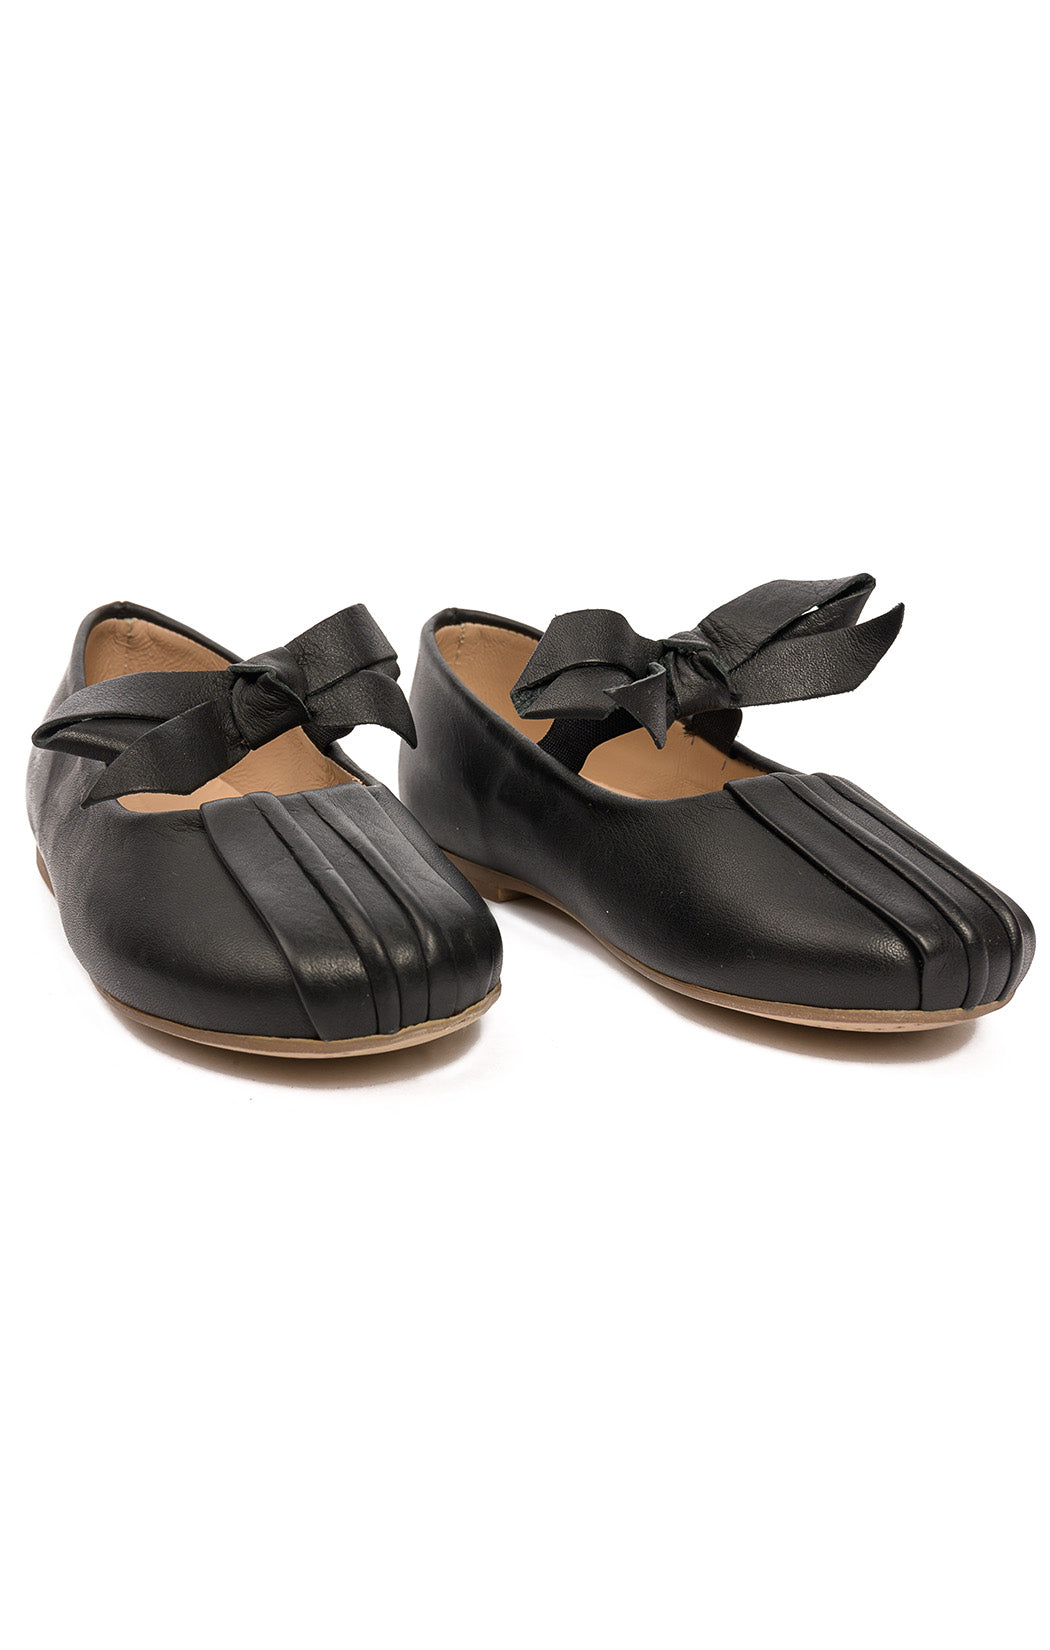 Front view of ZARA Shoes Size: 22 months